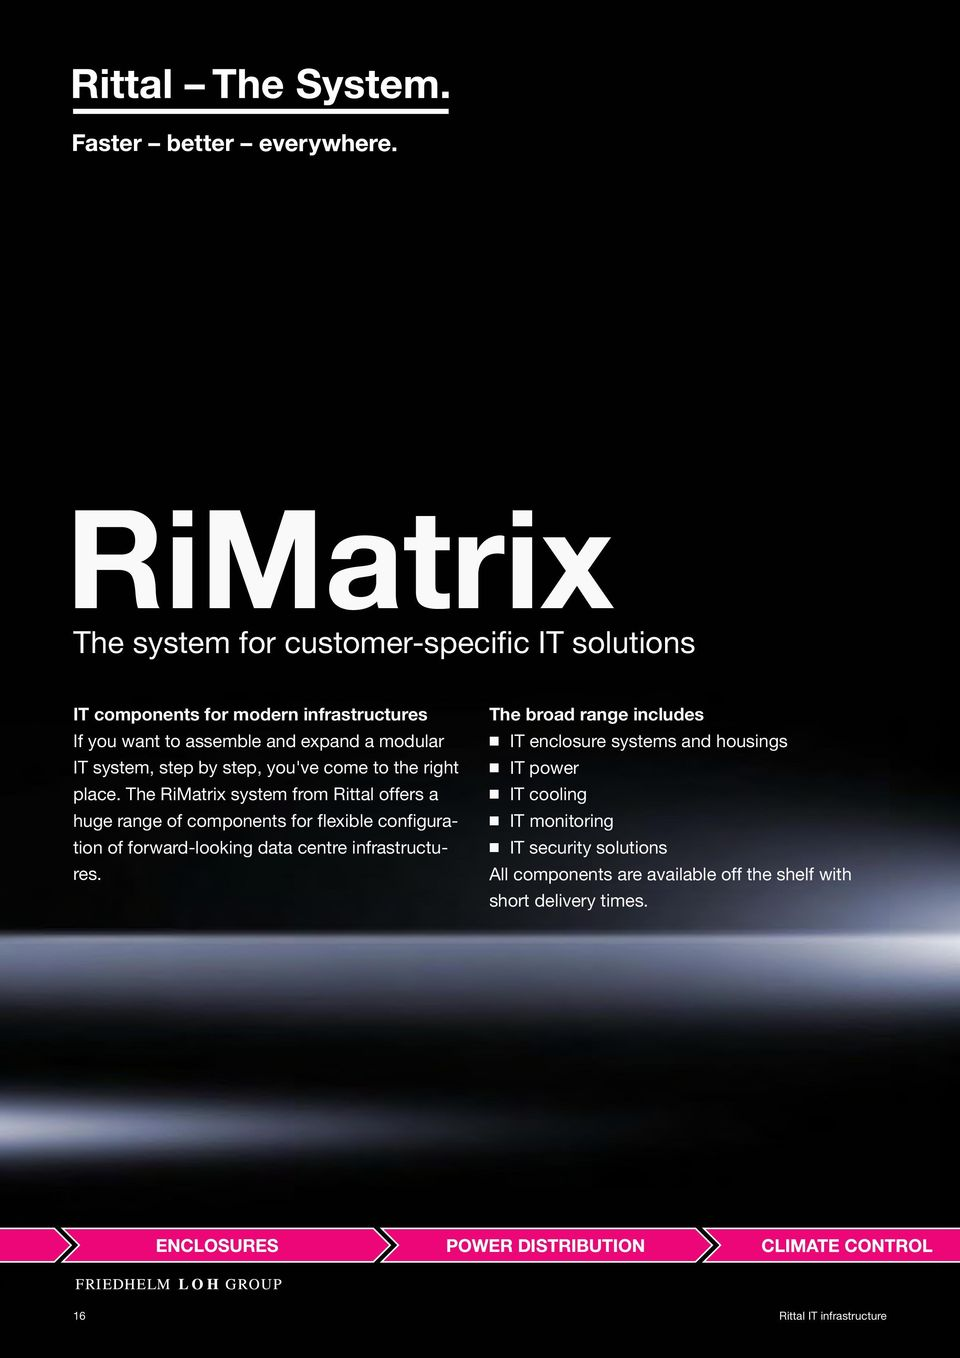 The RiMatrix system from Rittal offers a huge range of components for flexible configuration of forward-looking data centre